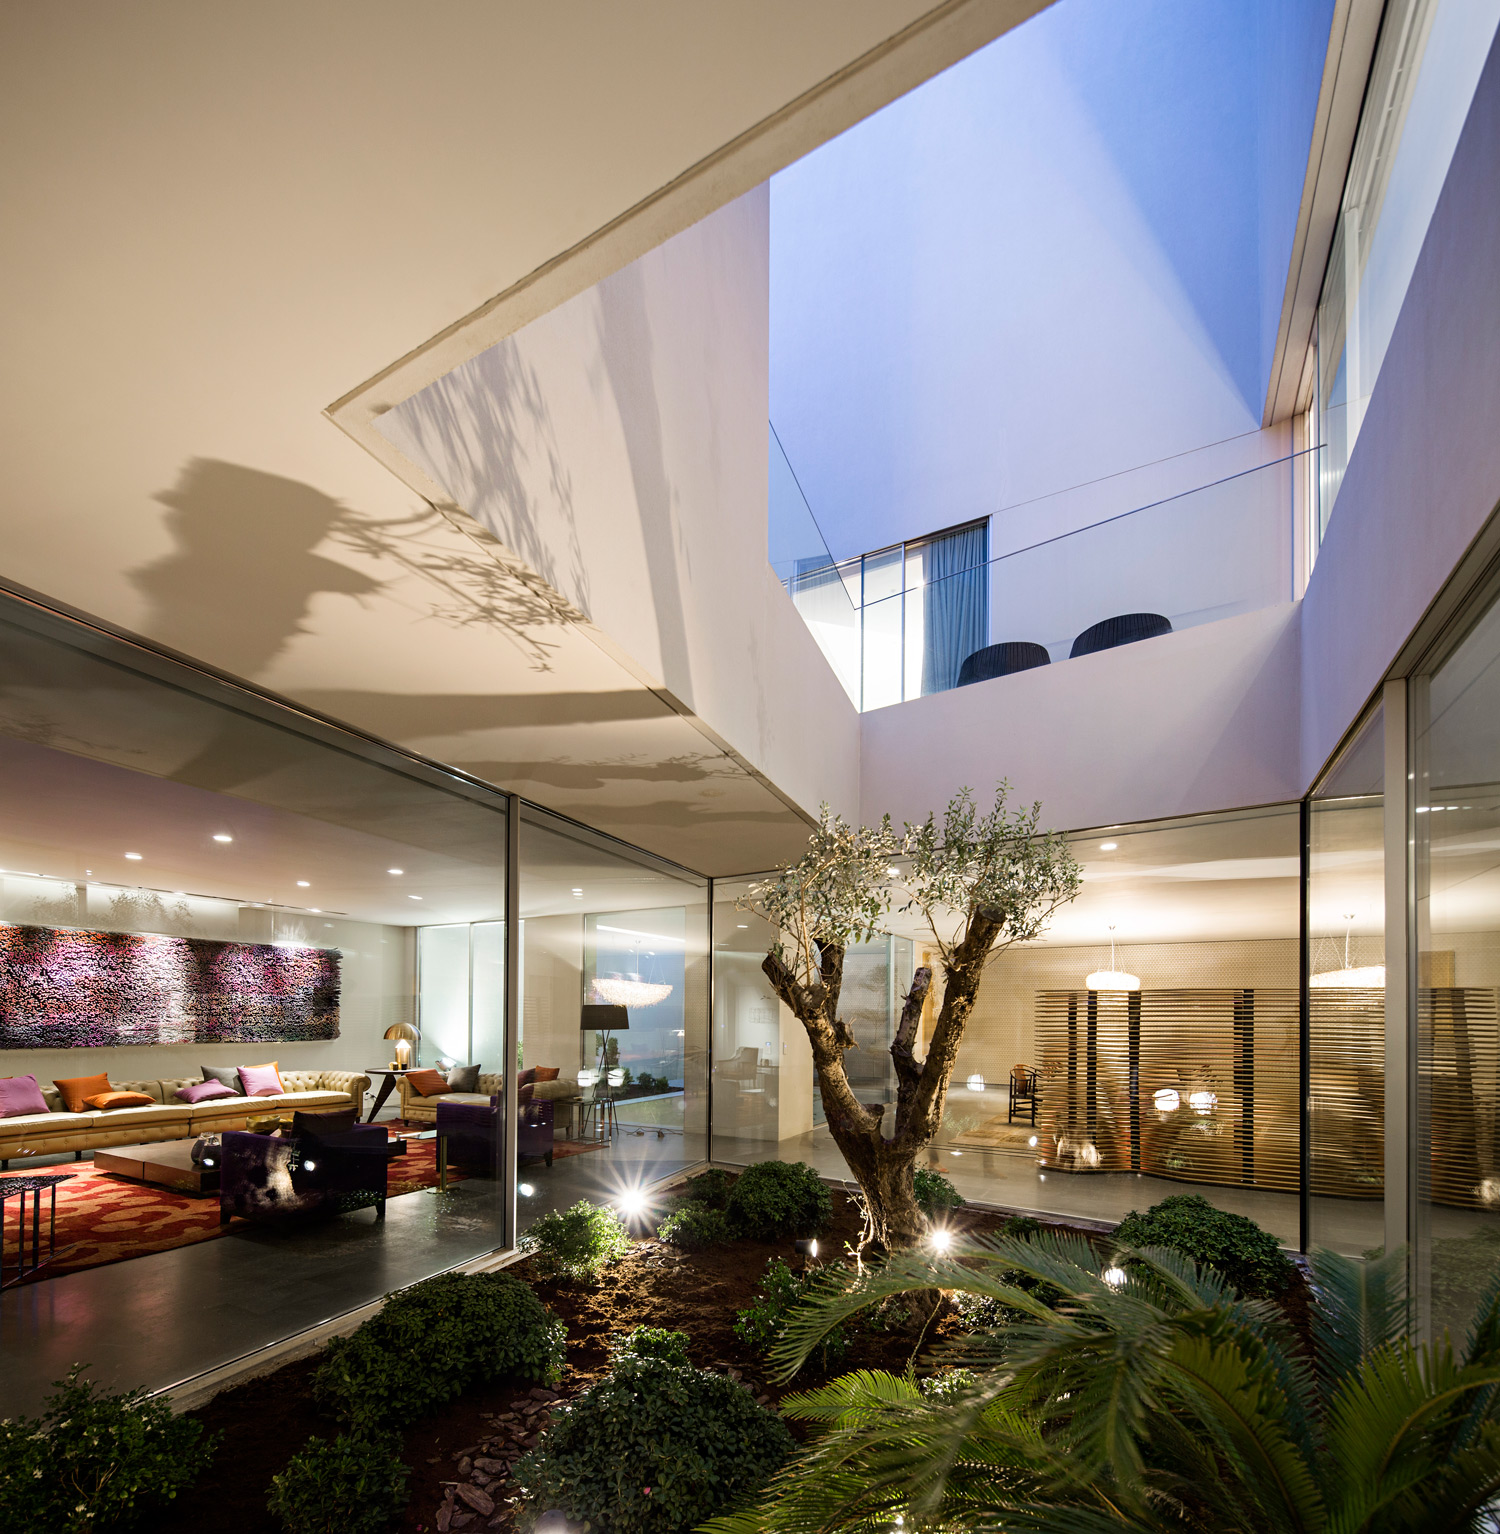 AGI_WALL_HOUSE_KUWAIT_PAN_081015_0064